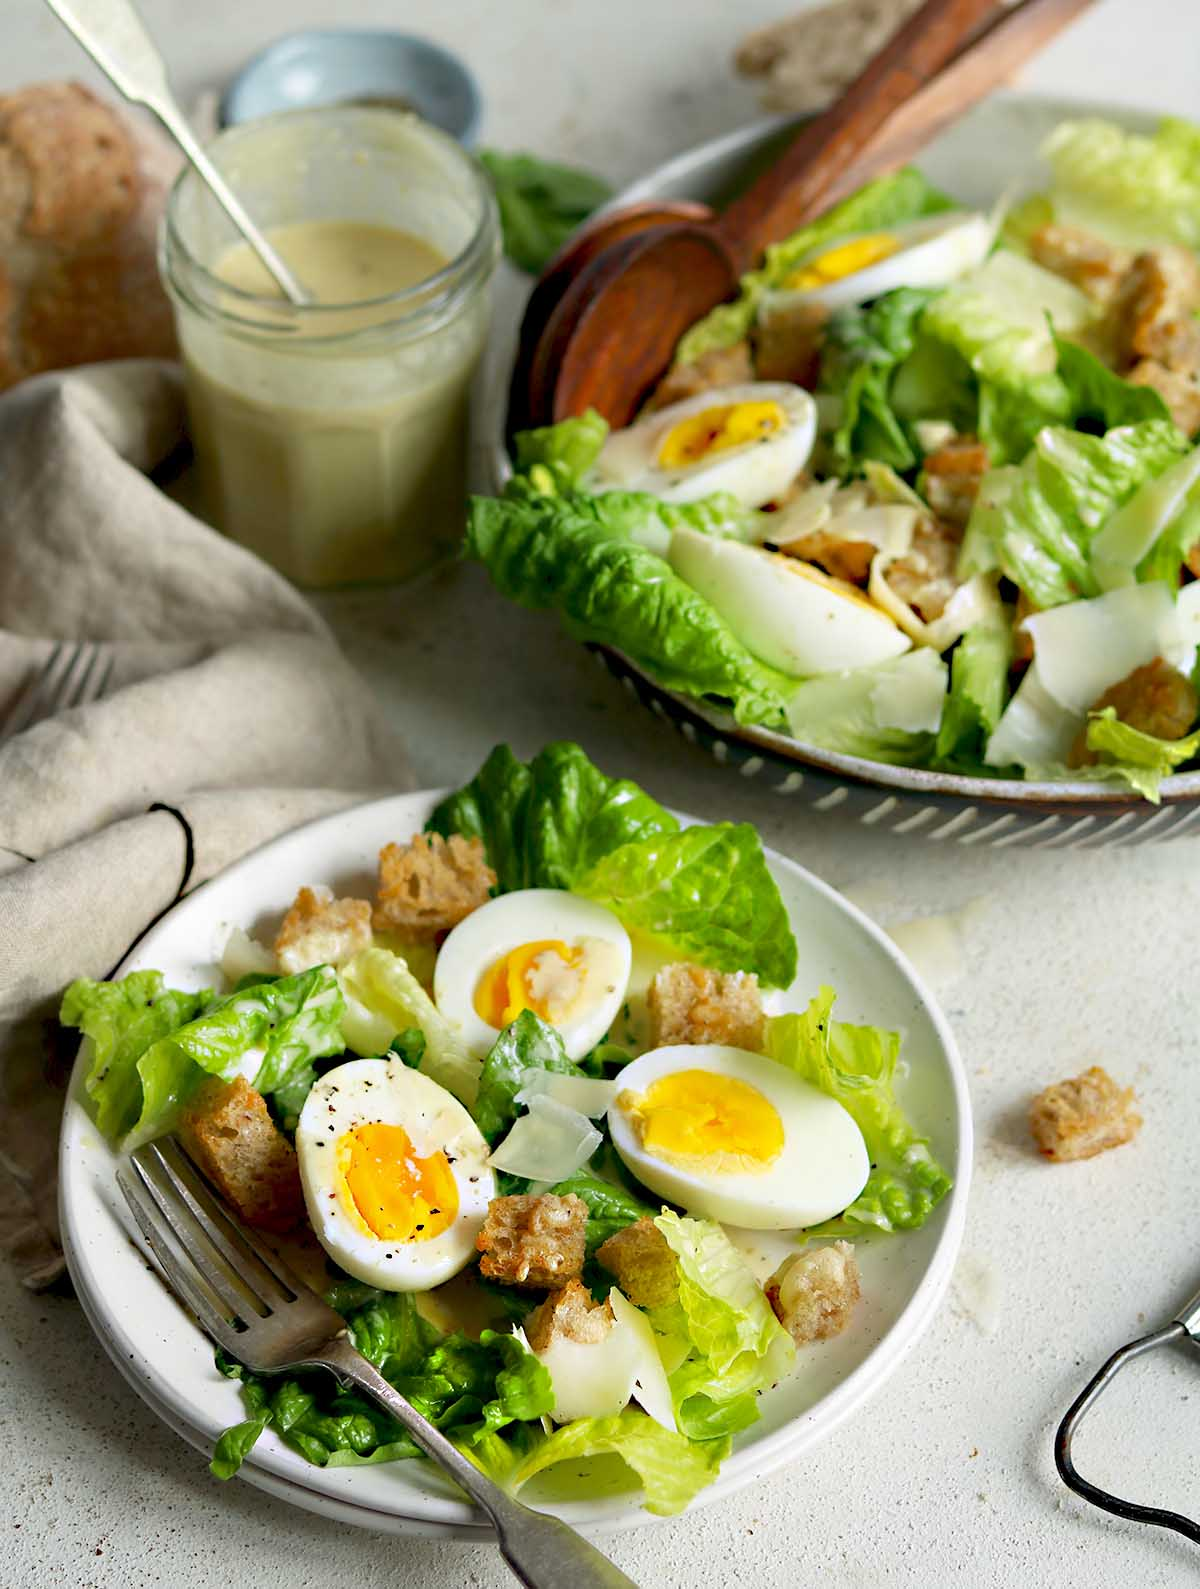 Romaine lettuce, eggs, croutons and Vegetarian Parmesan in a salad dressing.